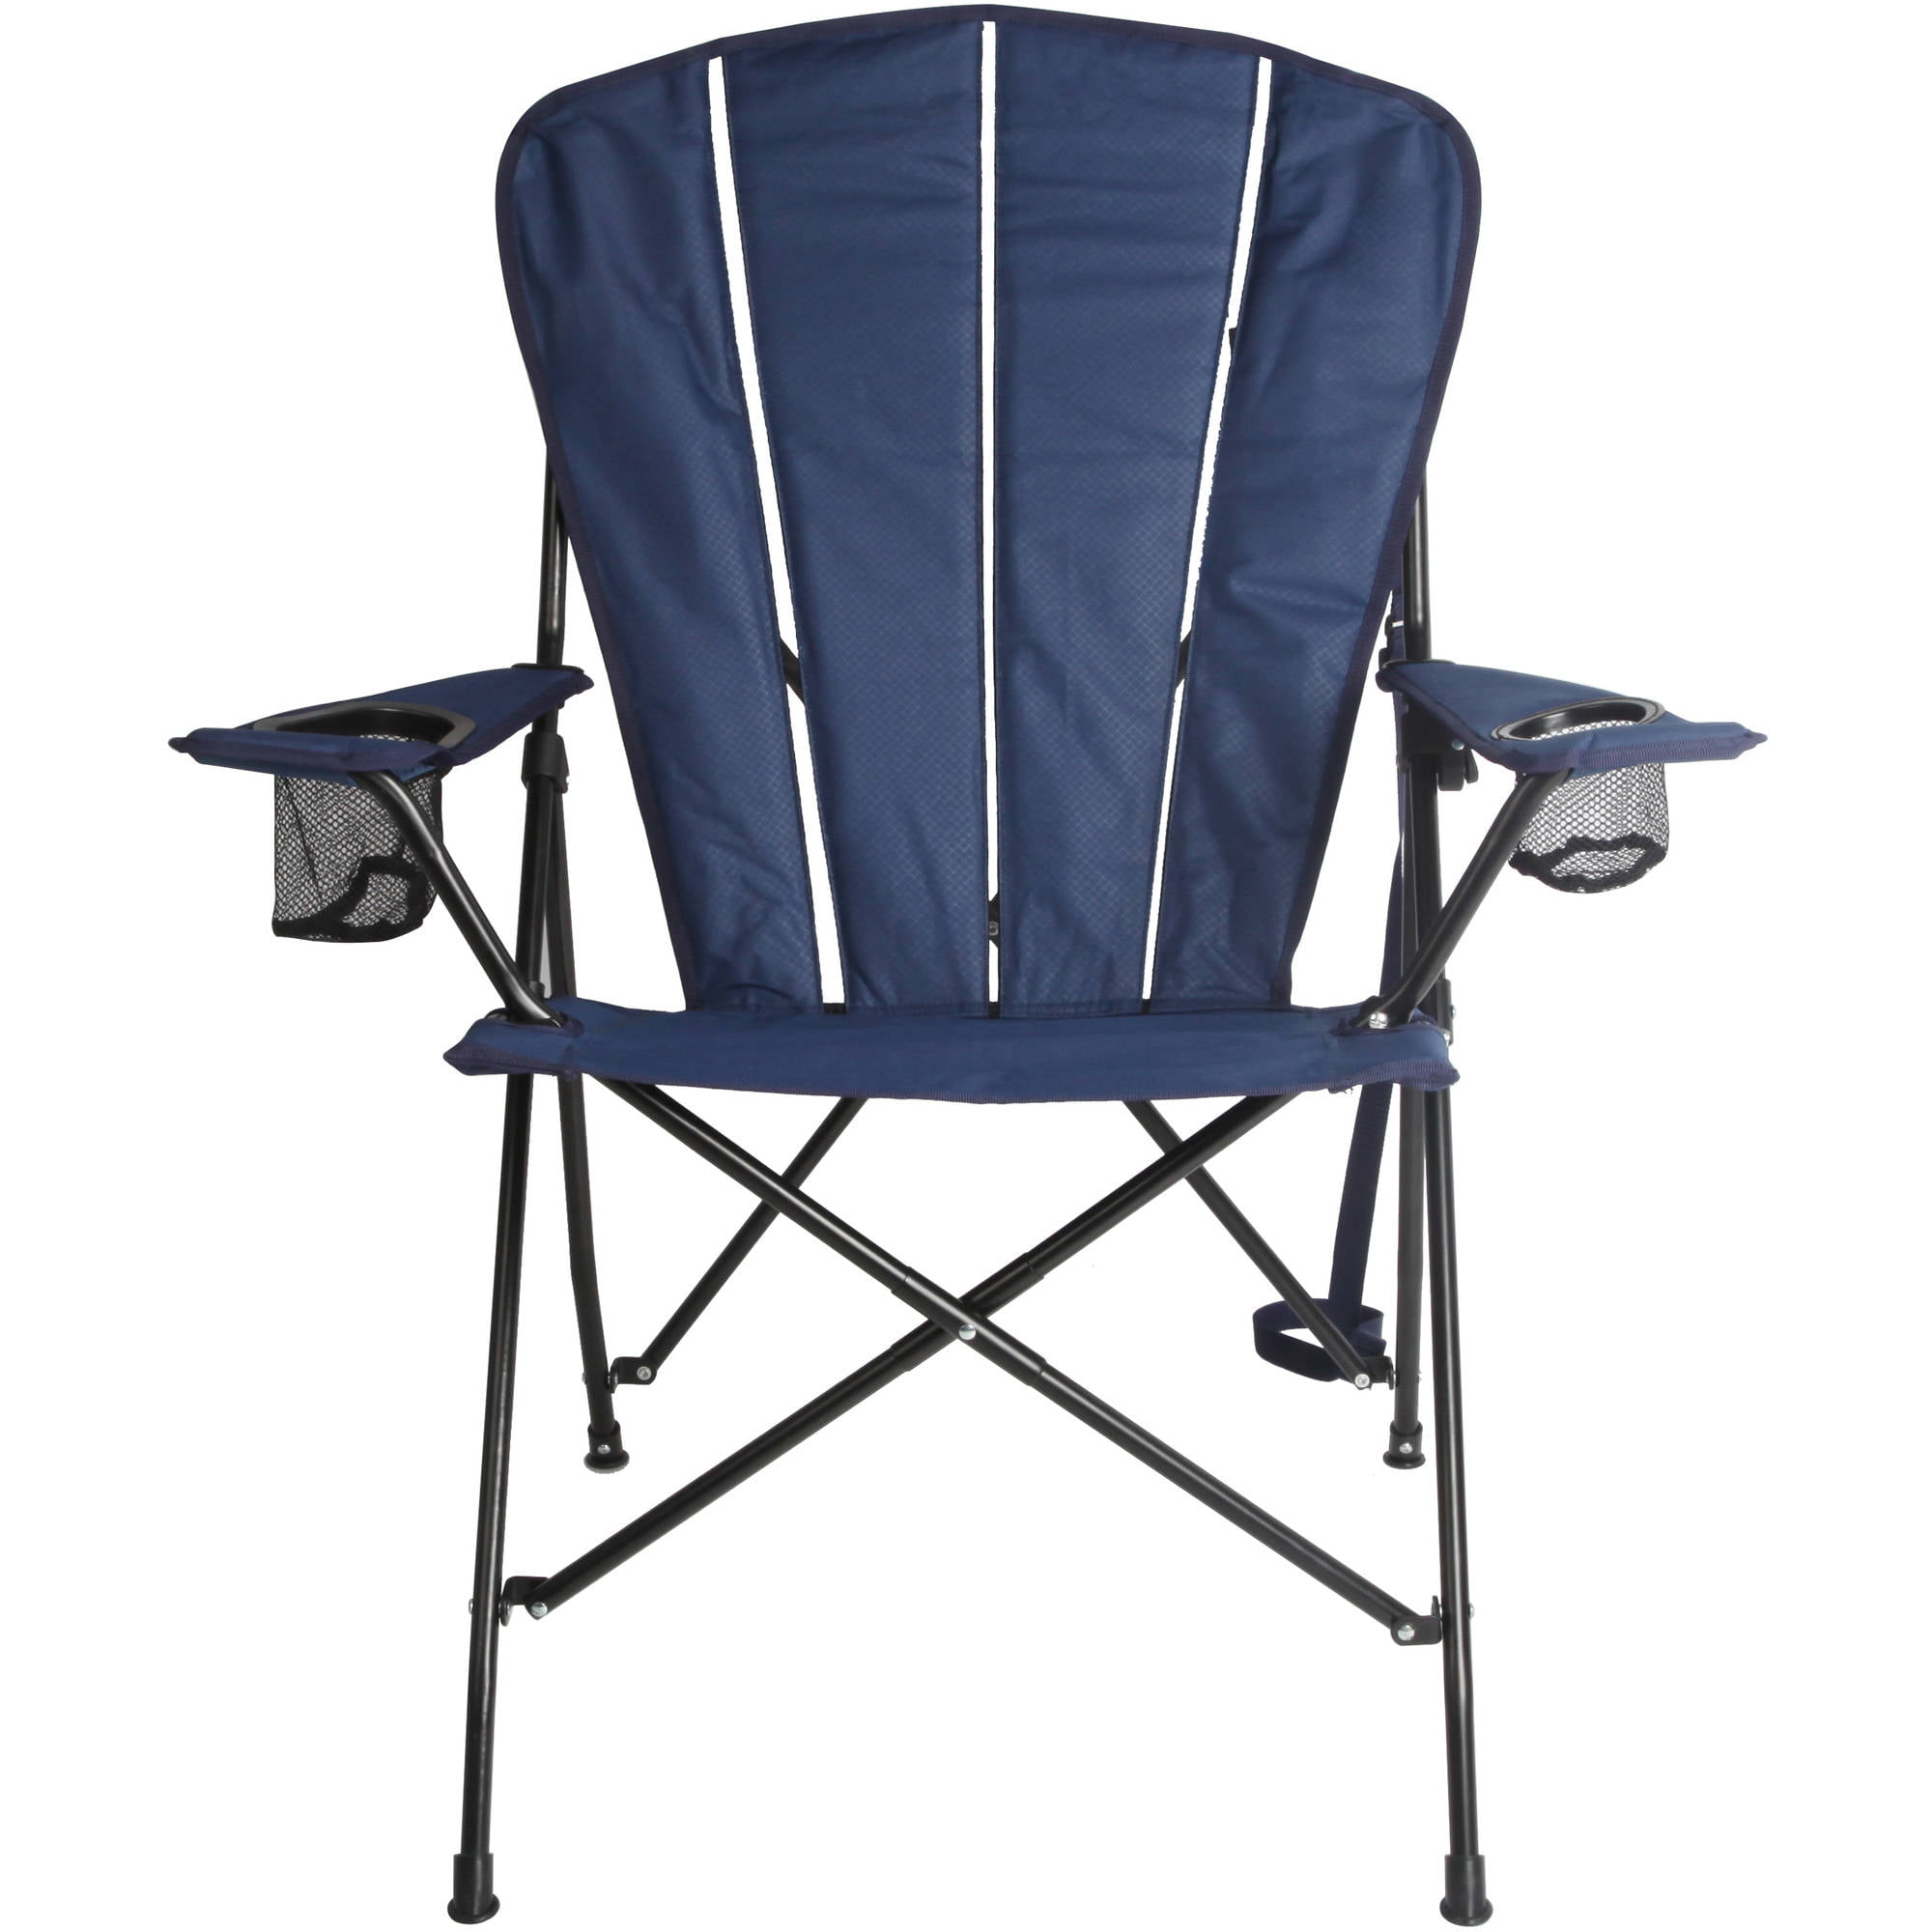 Ozark Trail Deluxe Camping Adirondack Chair Navy